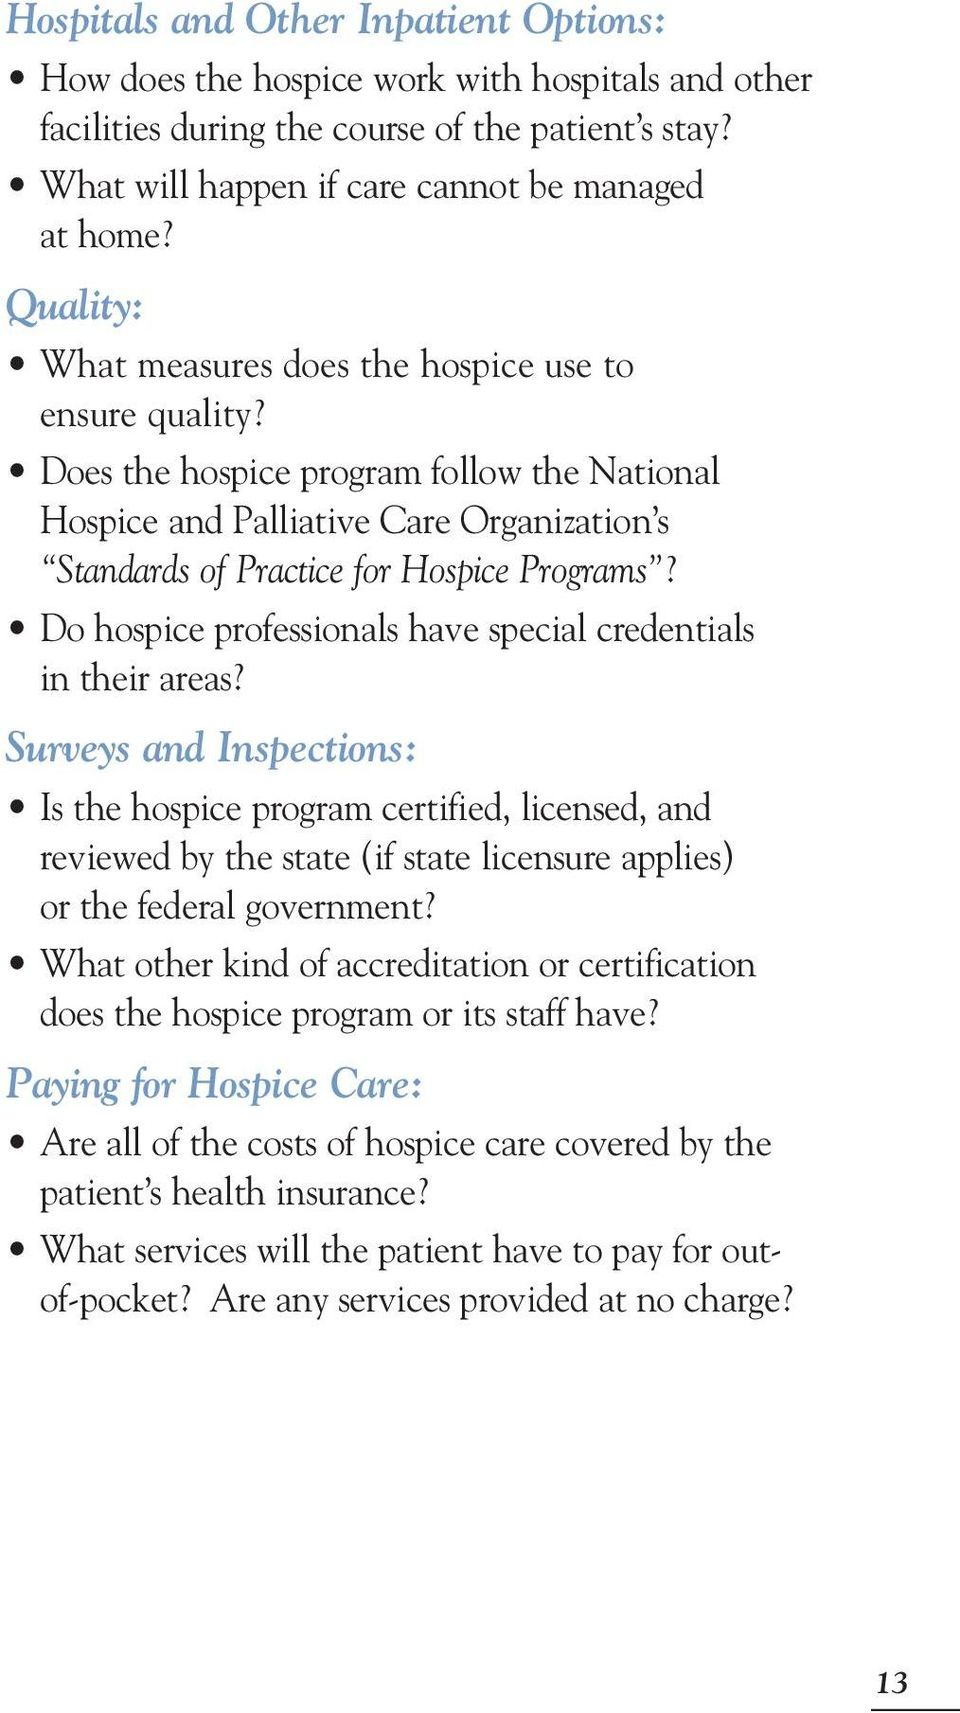 Do hospice professionals have special credentials in their areas?